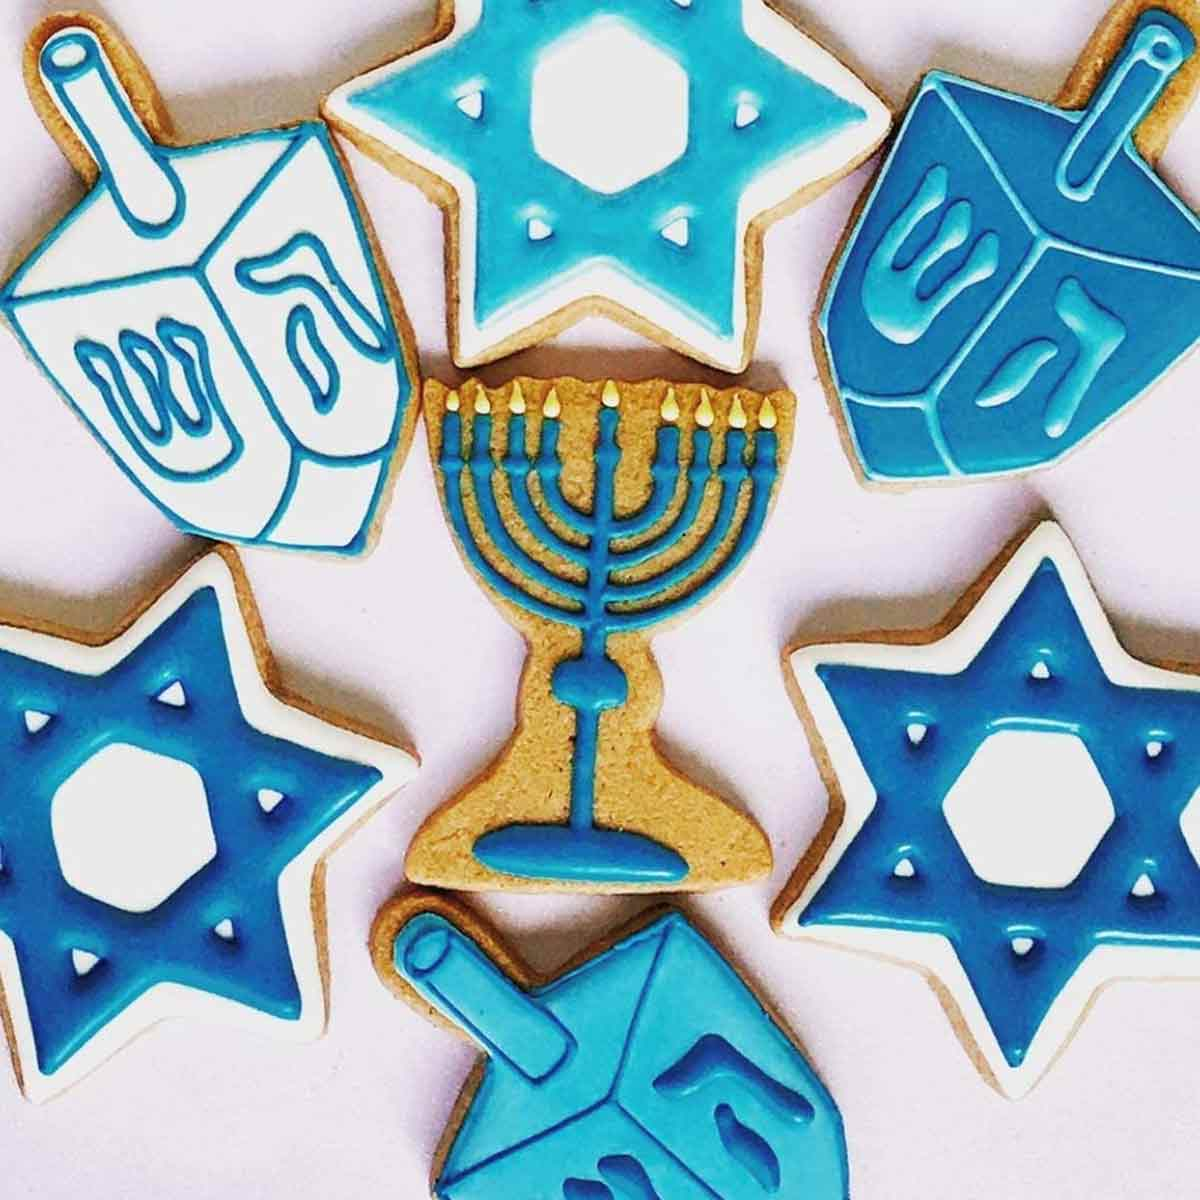 Hanukkah Cookie Cutters showing frosted cookies.